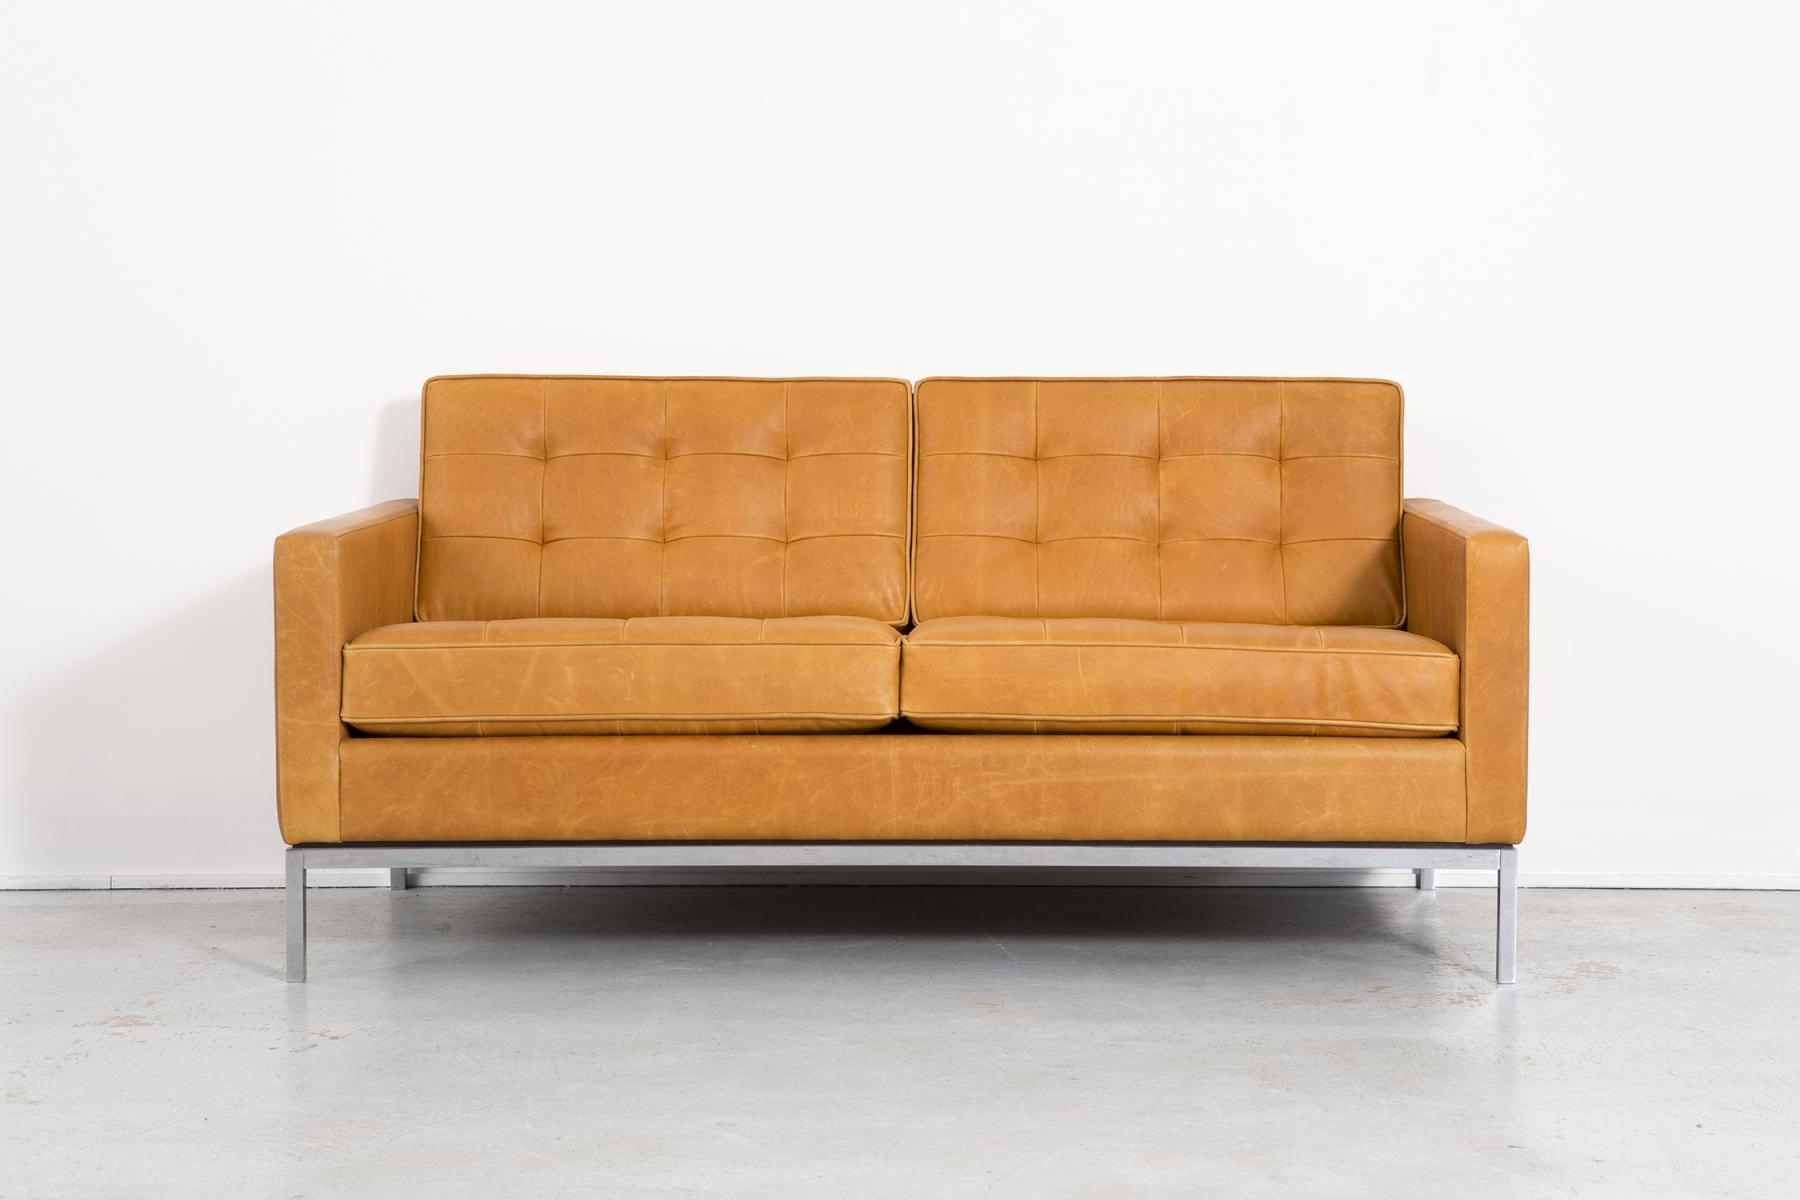 2018 Leather Sofaflorence Knoll Bassett For Knoll, 1970S For Sale Intended For Florence Large Sofas (View 2 of 15)